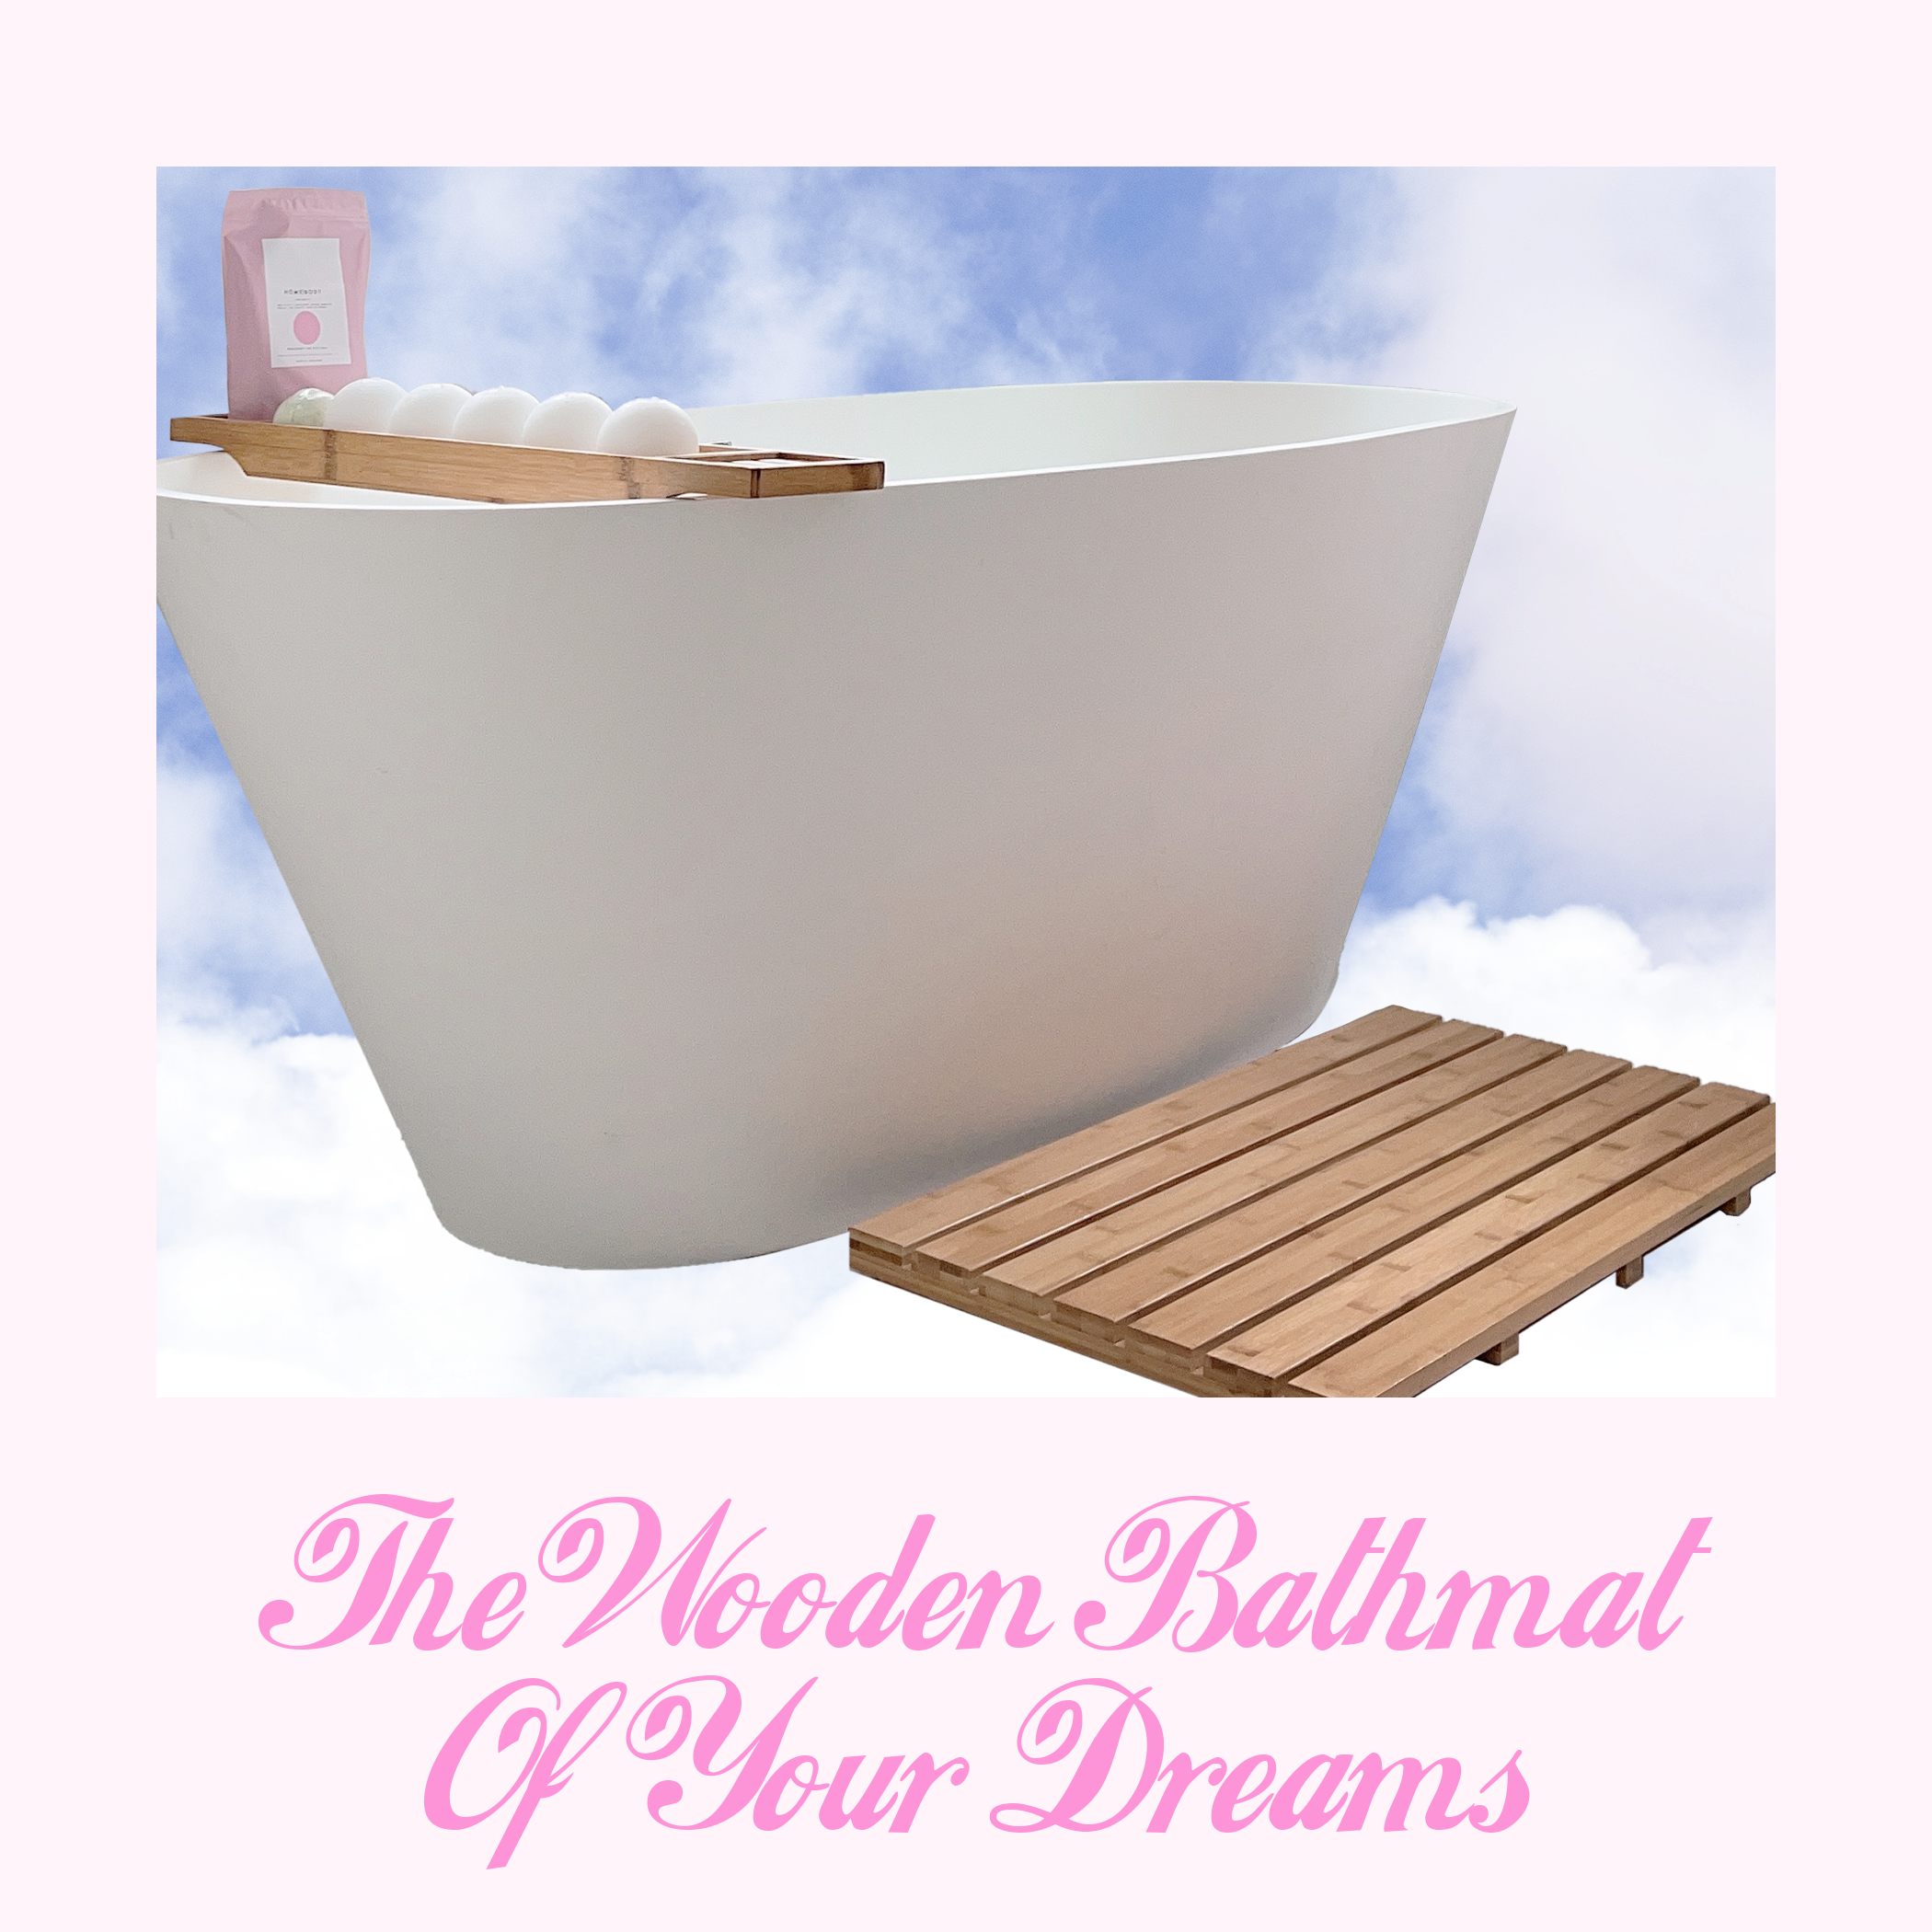 the skinny confidential bamboo bathmat | The Wooden Bathmat of Your Dreams